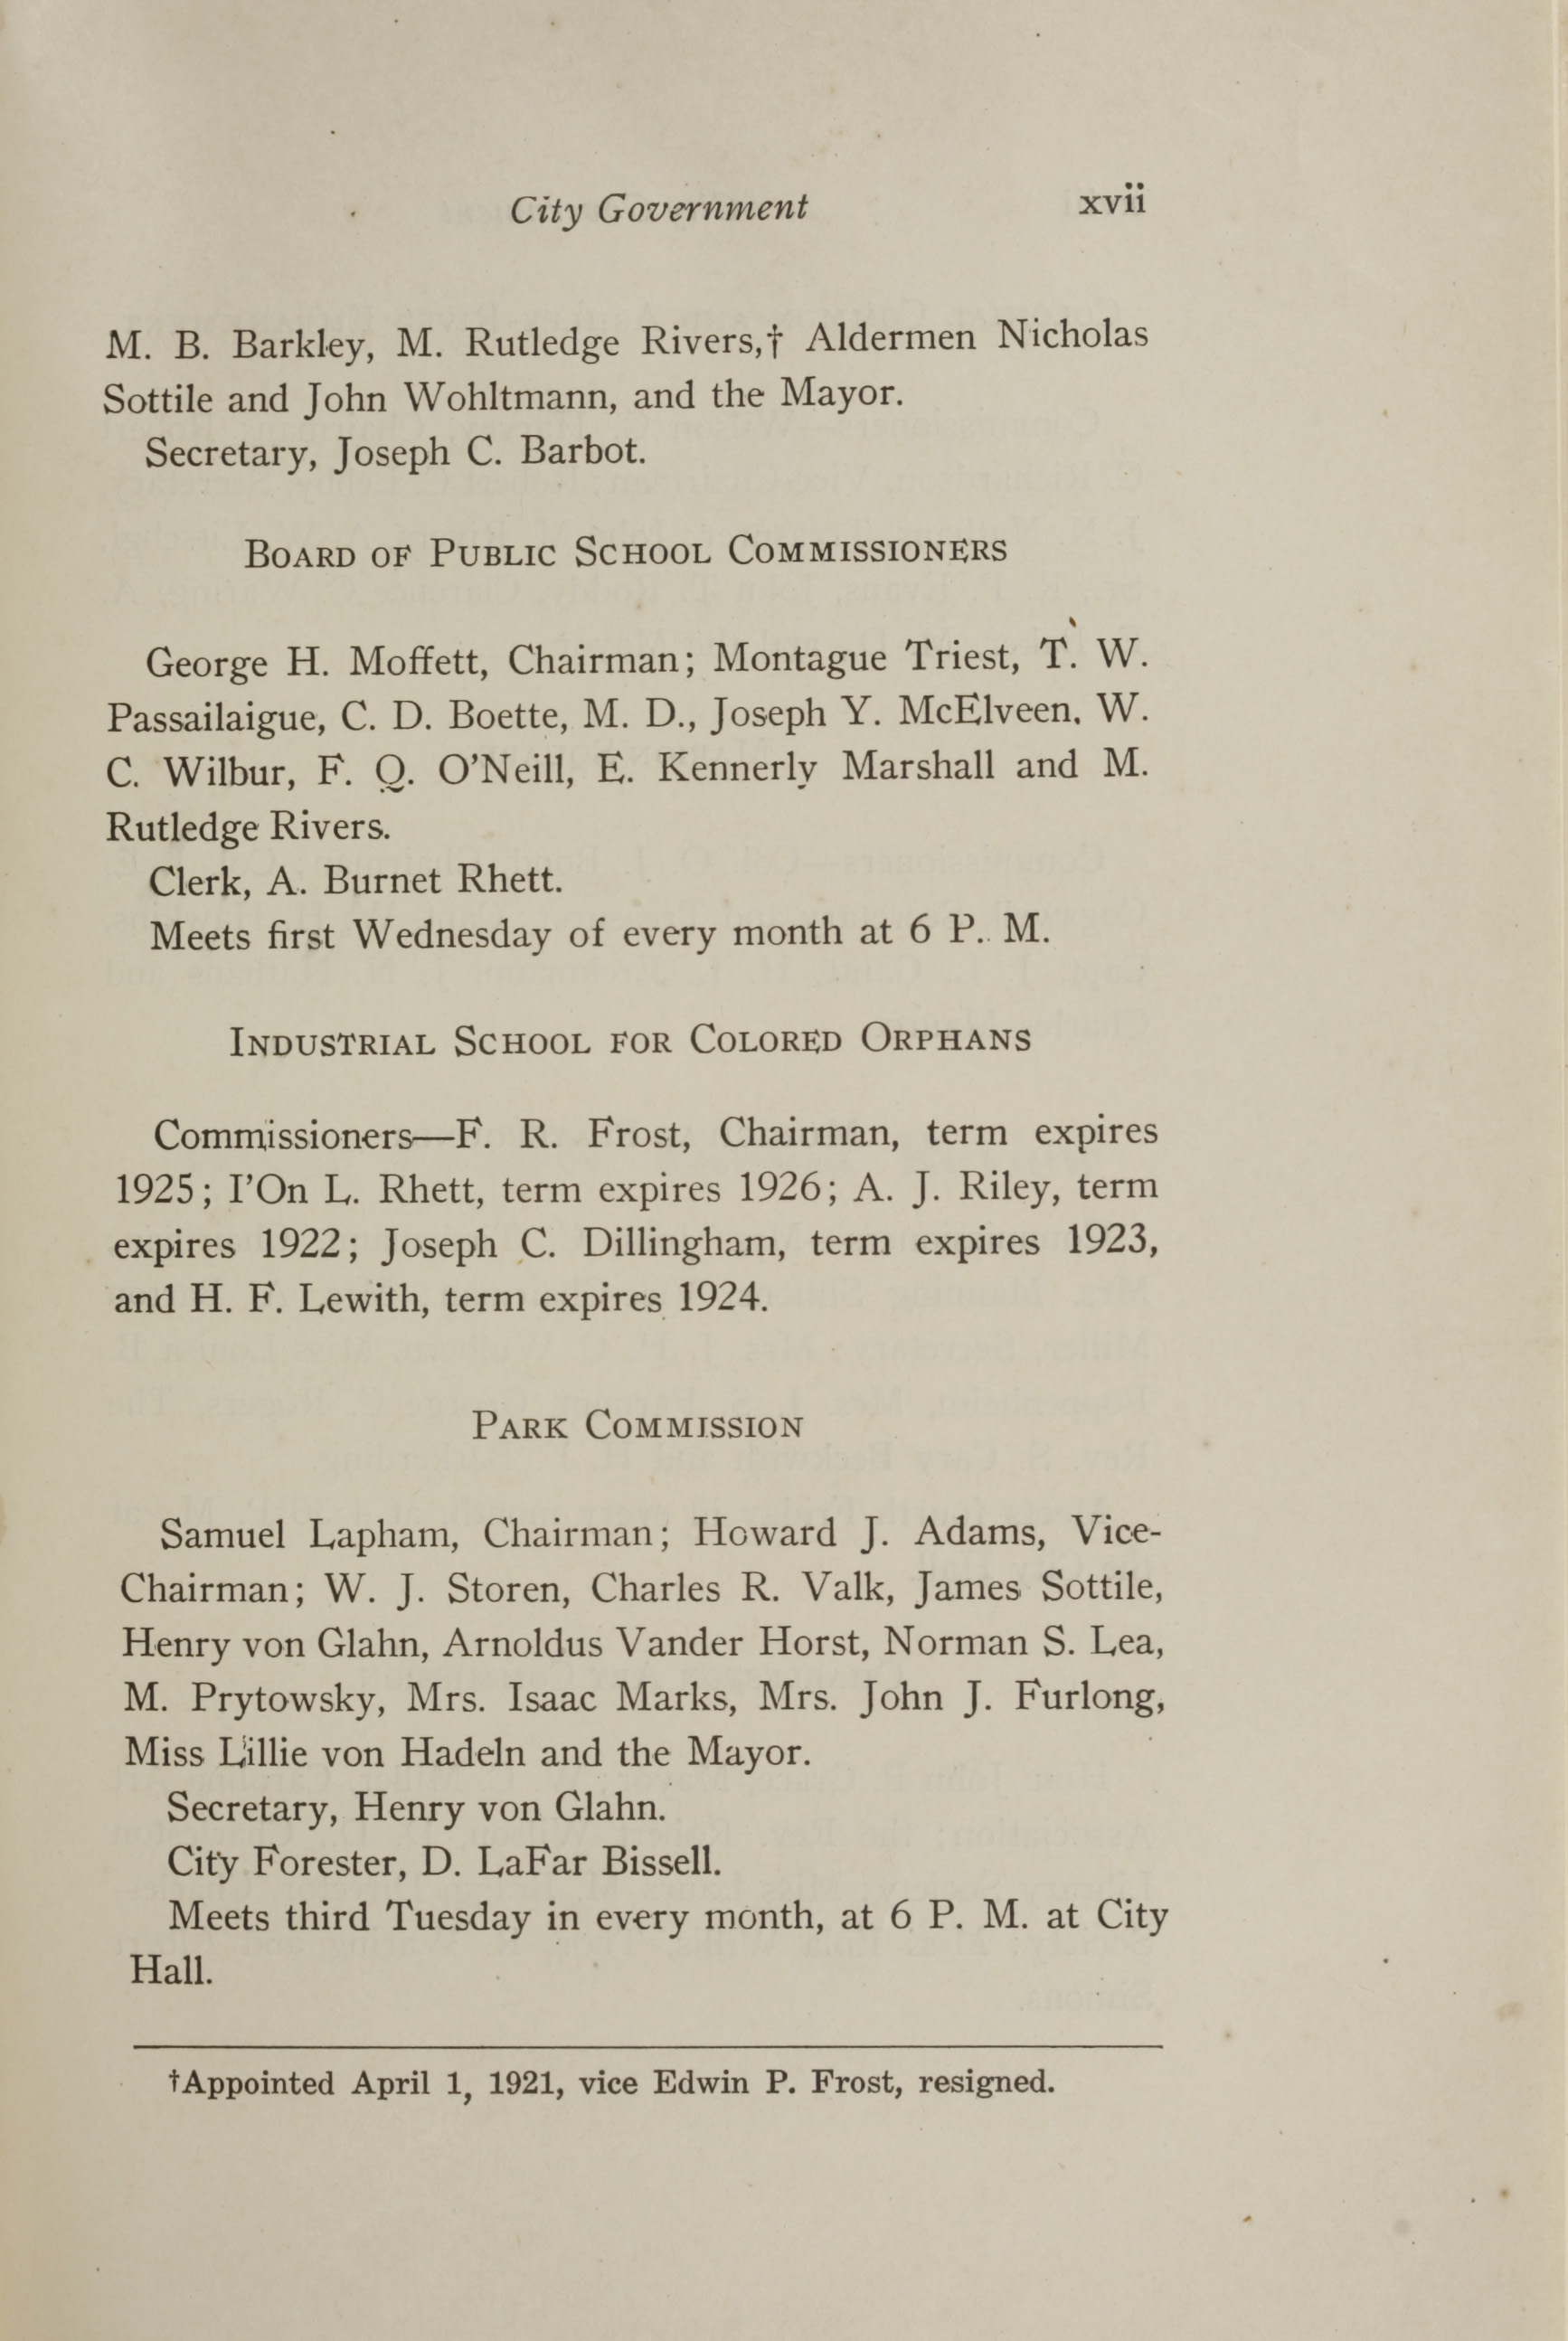 Charleston Yearbook, 1921, page xvii